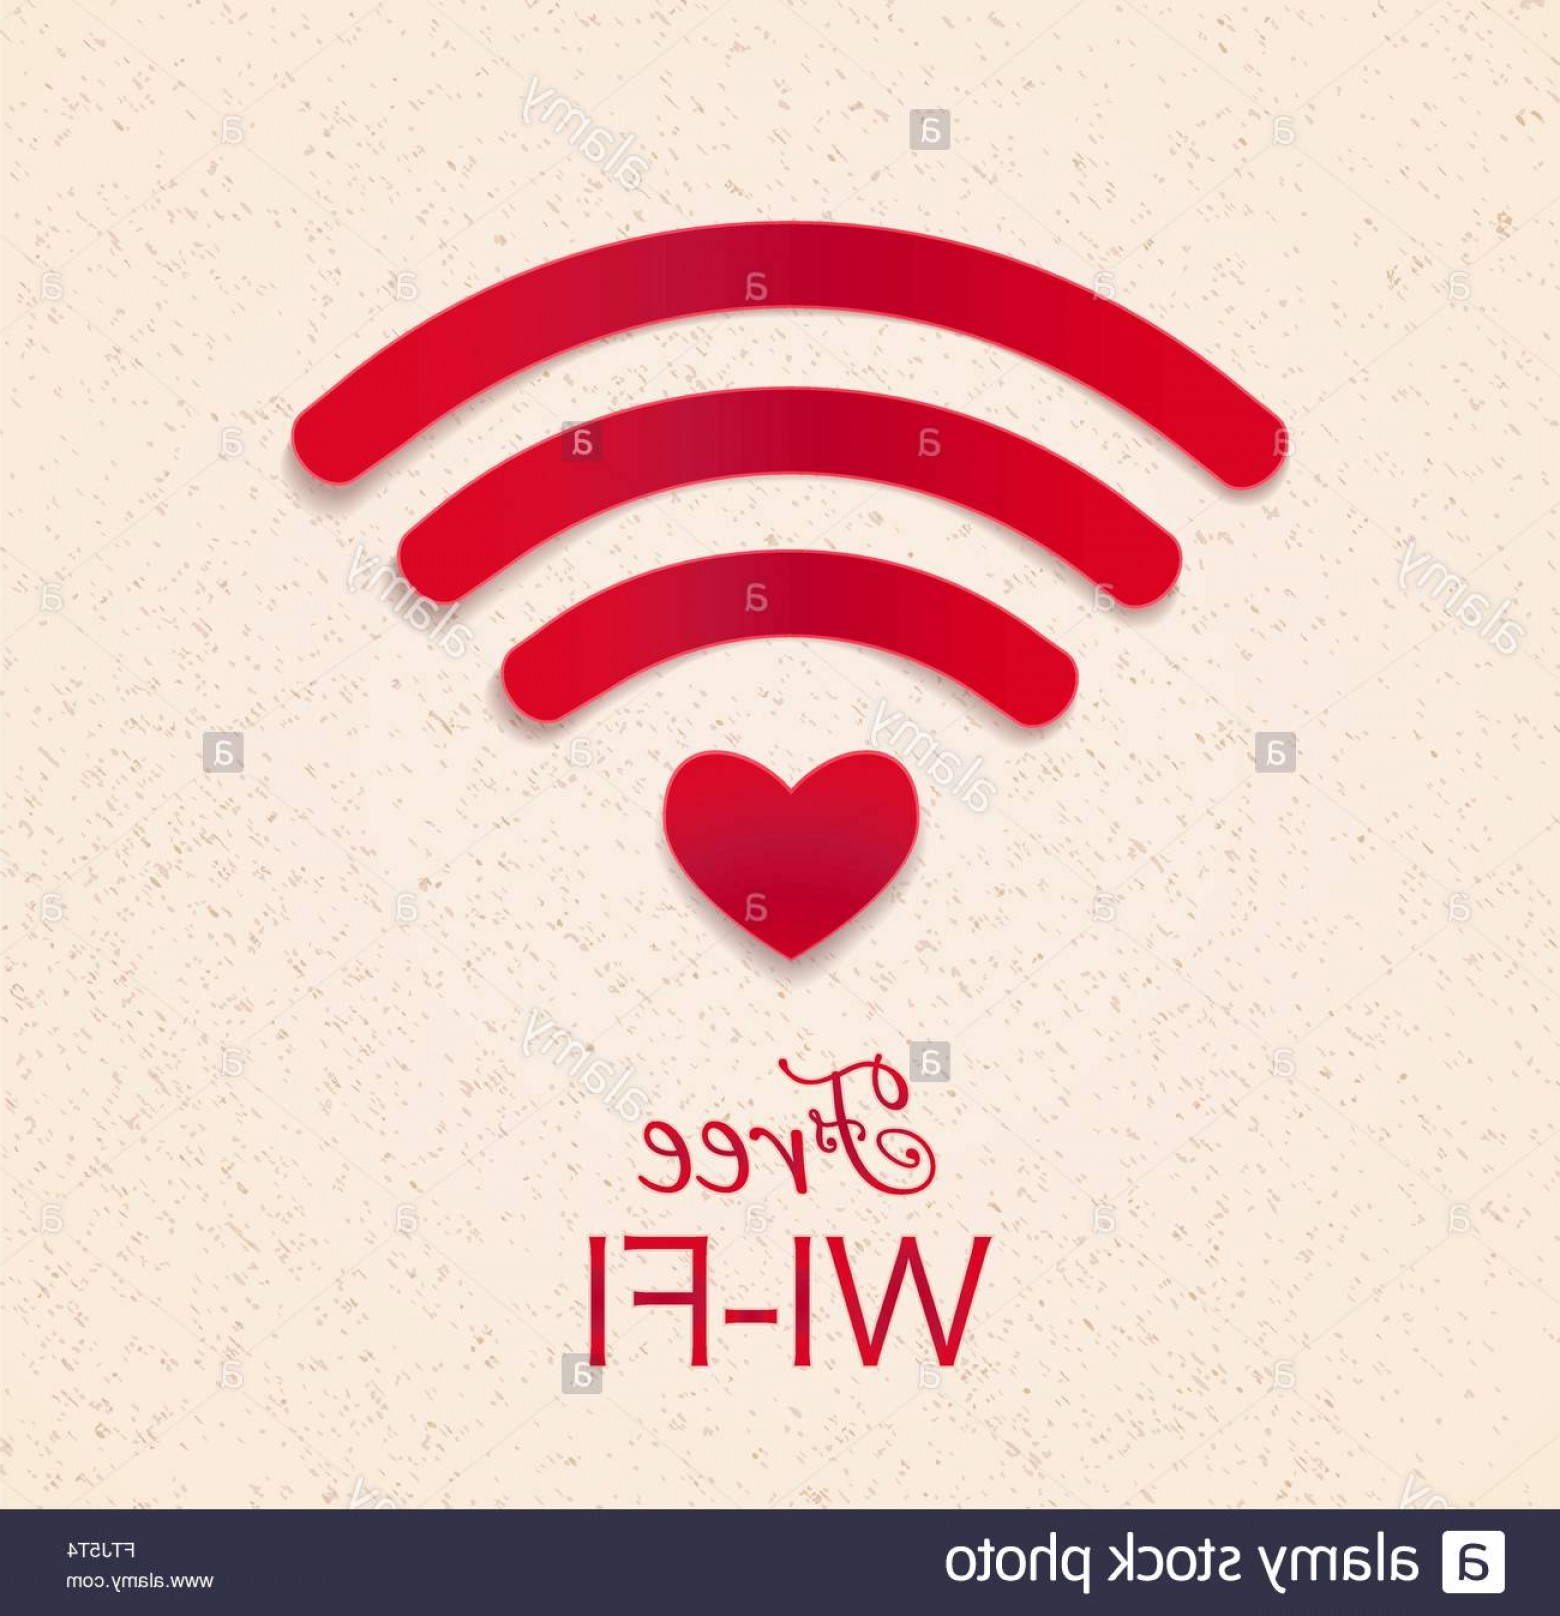 Wifi Symbol Clip Art Vector: Stock Photo Wi Fi Red Icon With Heart Shape As Point Access Free Wifi Connection